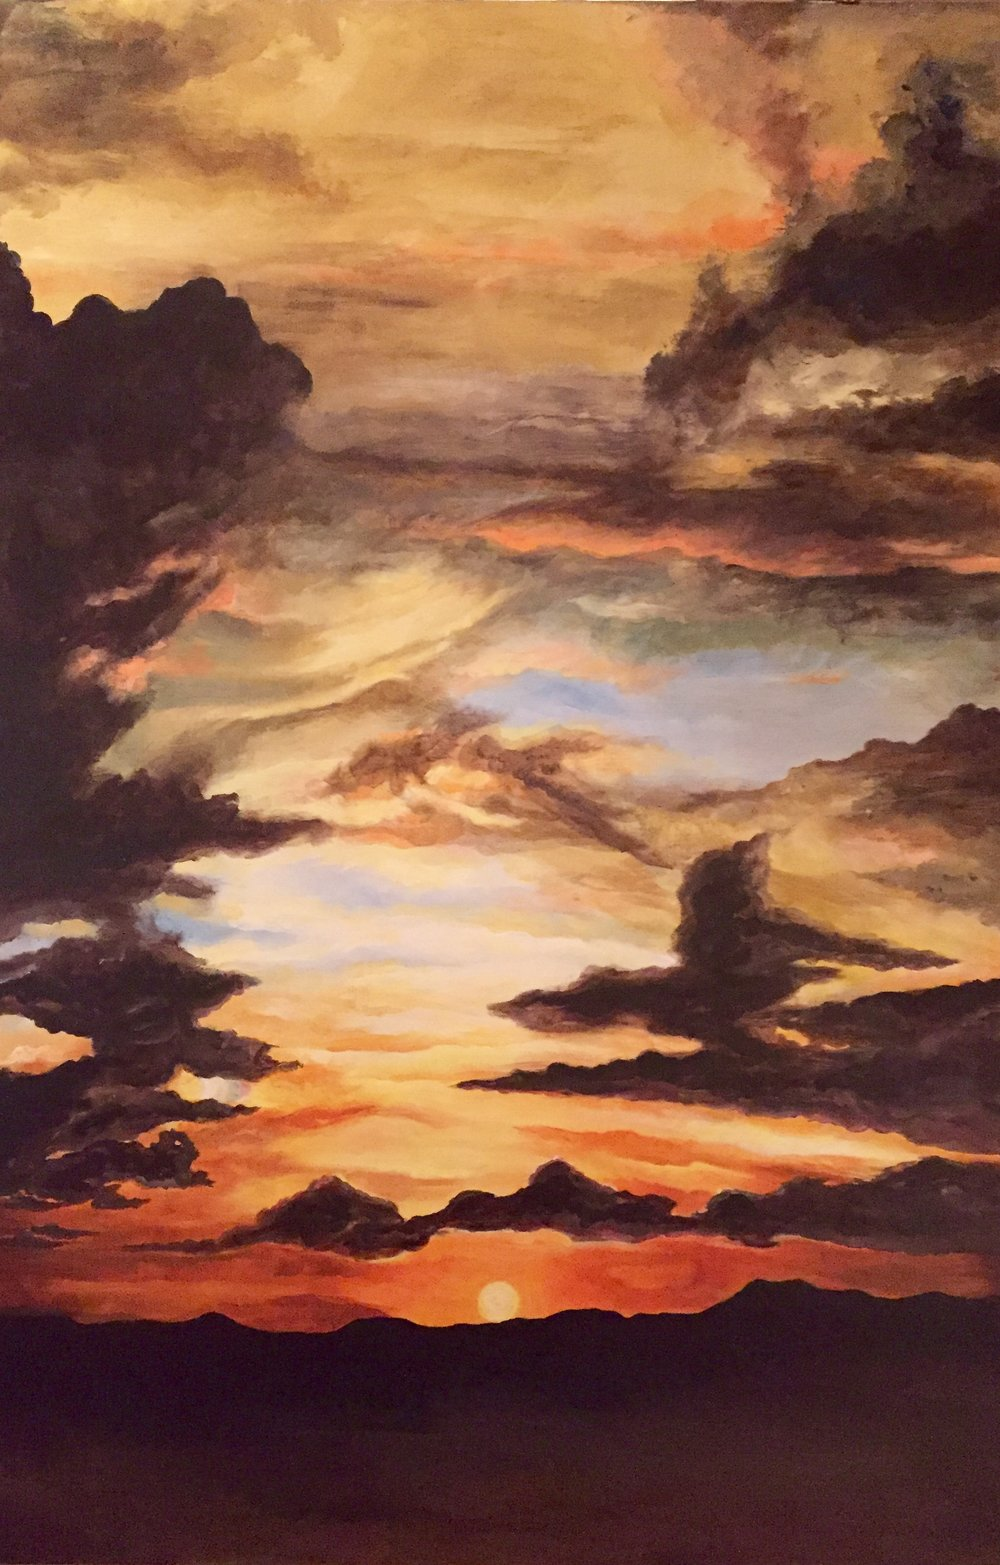 DARKNESS AND LIGHT   This dramatic sky suggests both the glory of God and the darkness of evil. It is probably more than a coincidence that this inspiration came to me after the presidential elections.      24x 36                                                                           December 2016          Original  $860.                                                     Giclee on canvas enhanced                      $460.